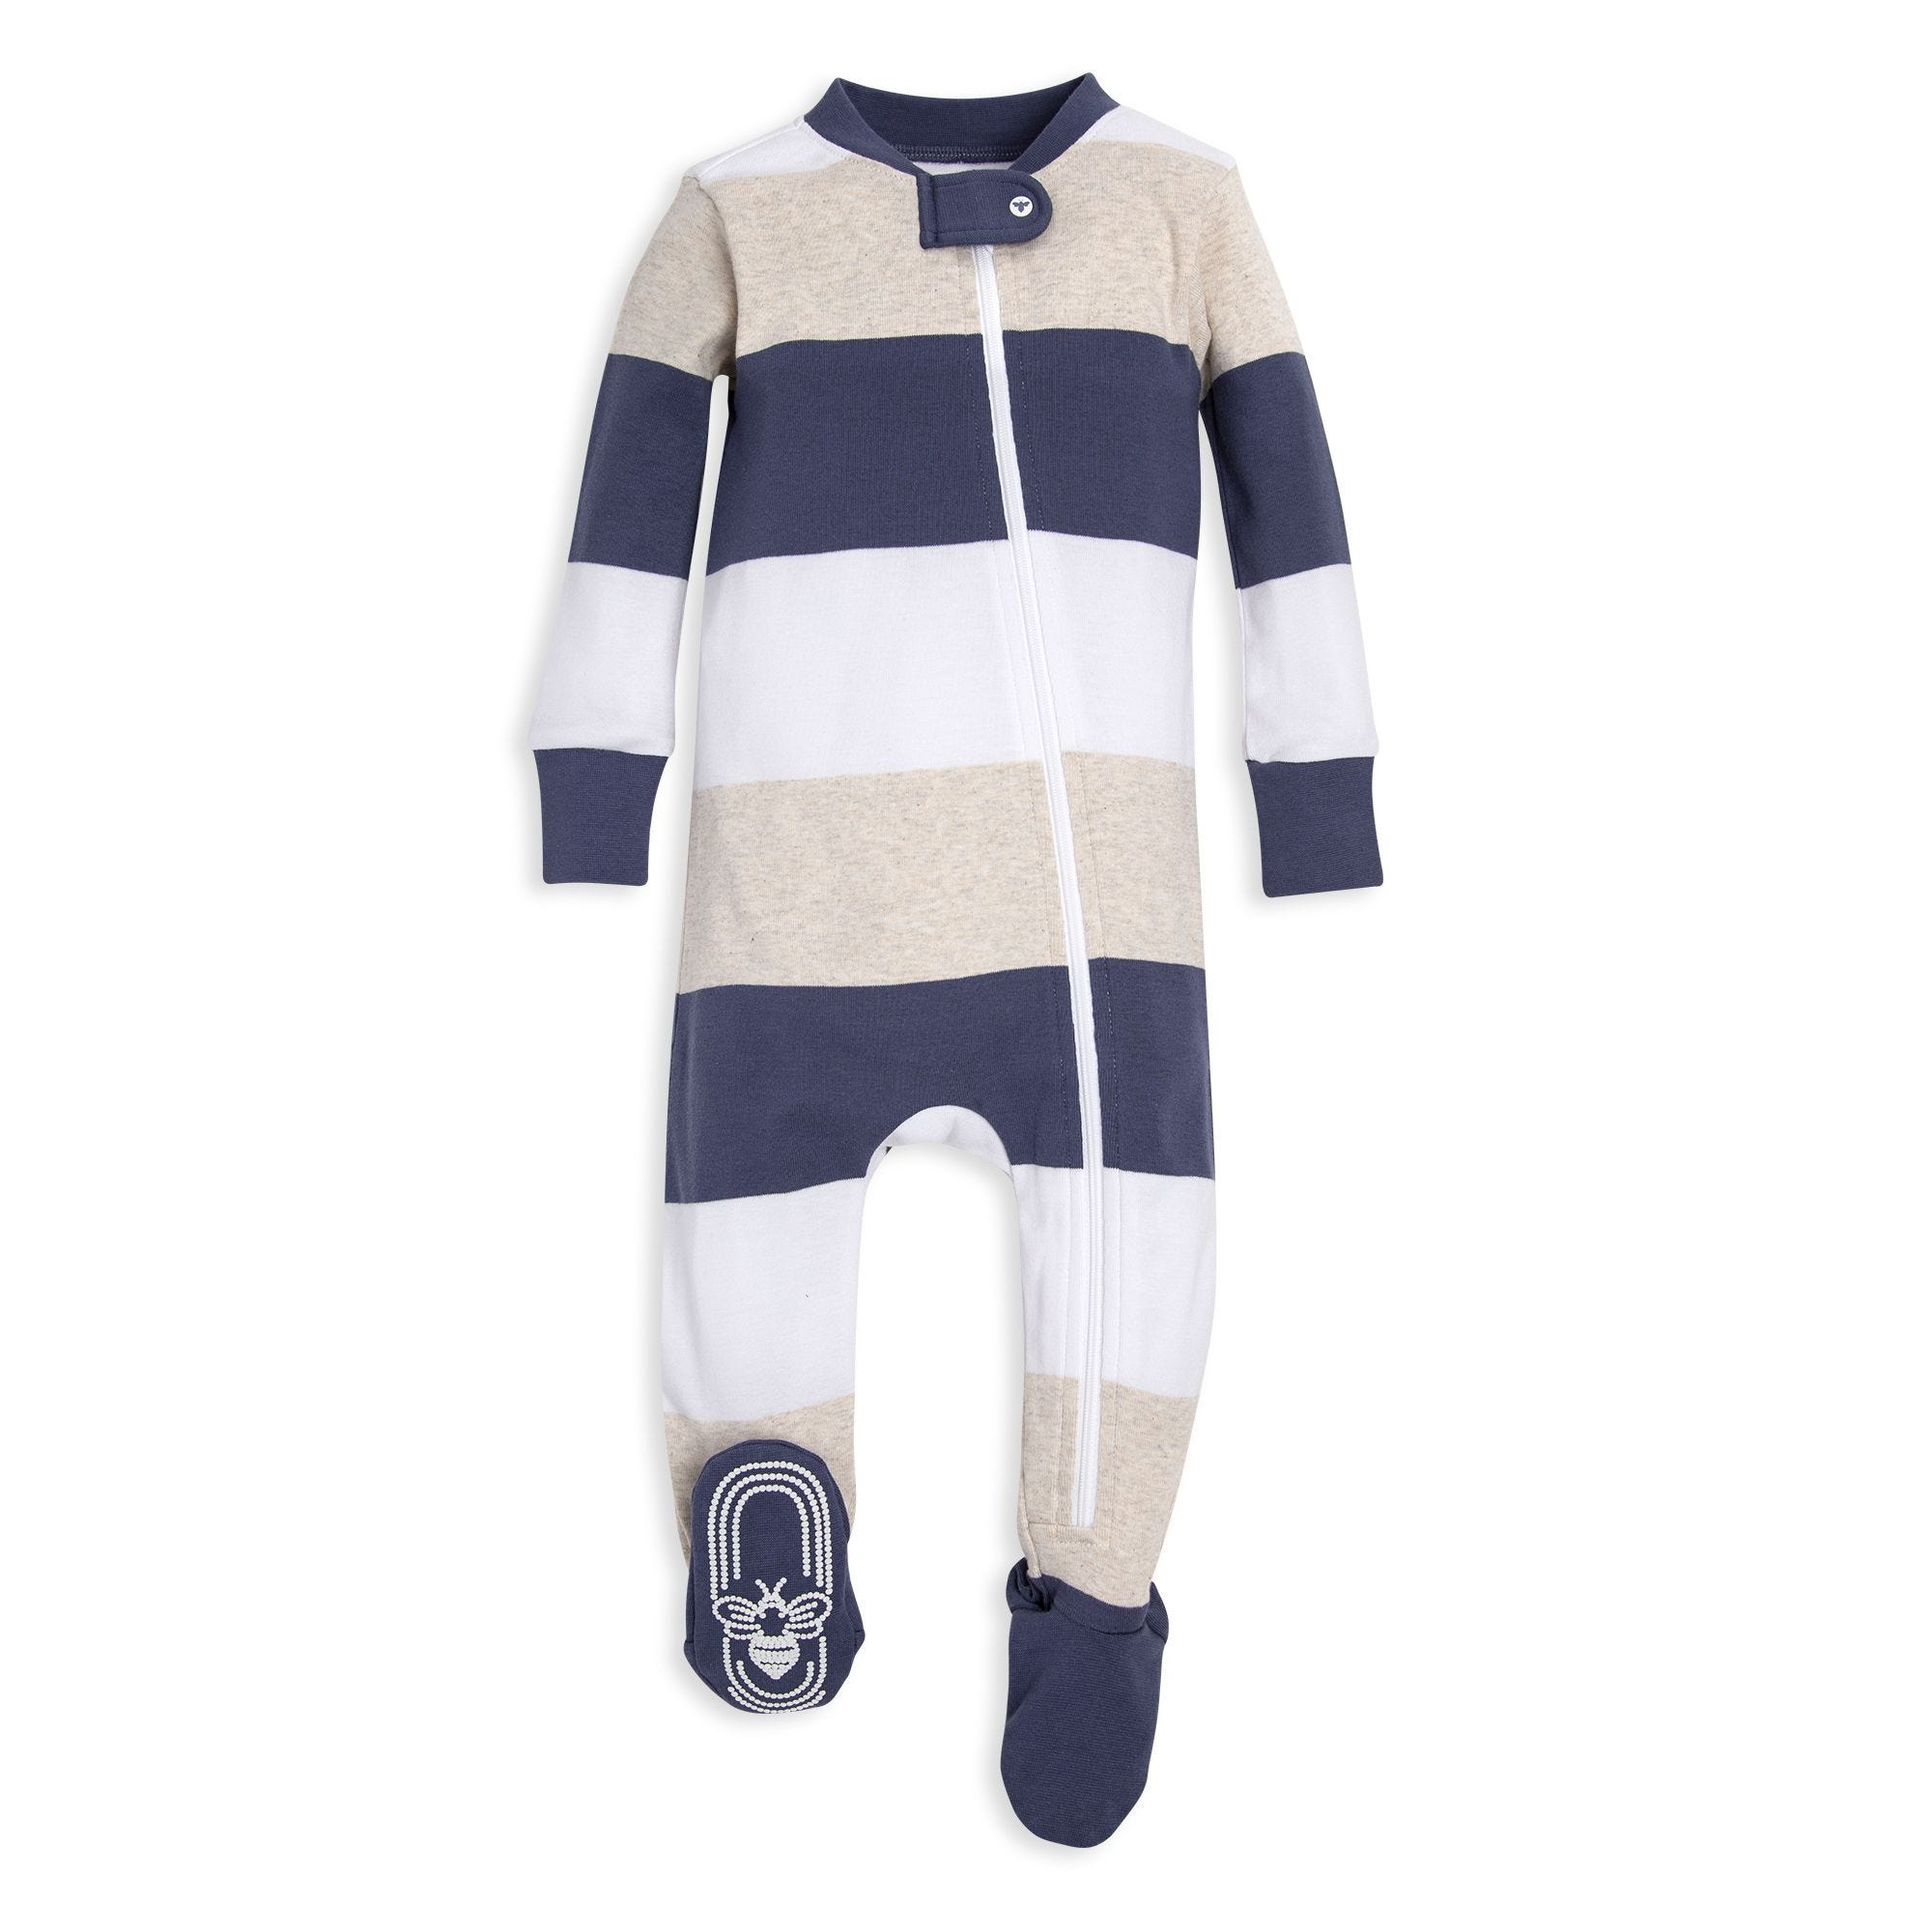 5f9fba11b Jumbo Multi Stripe Organic Baby Zip Up Footed Pajamas